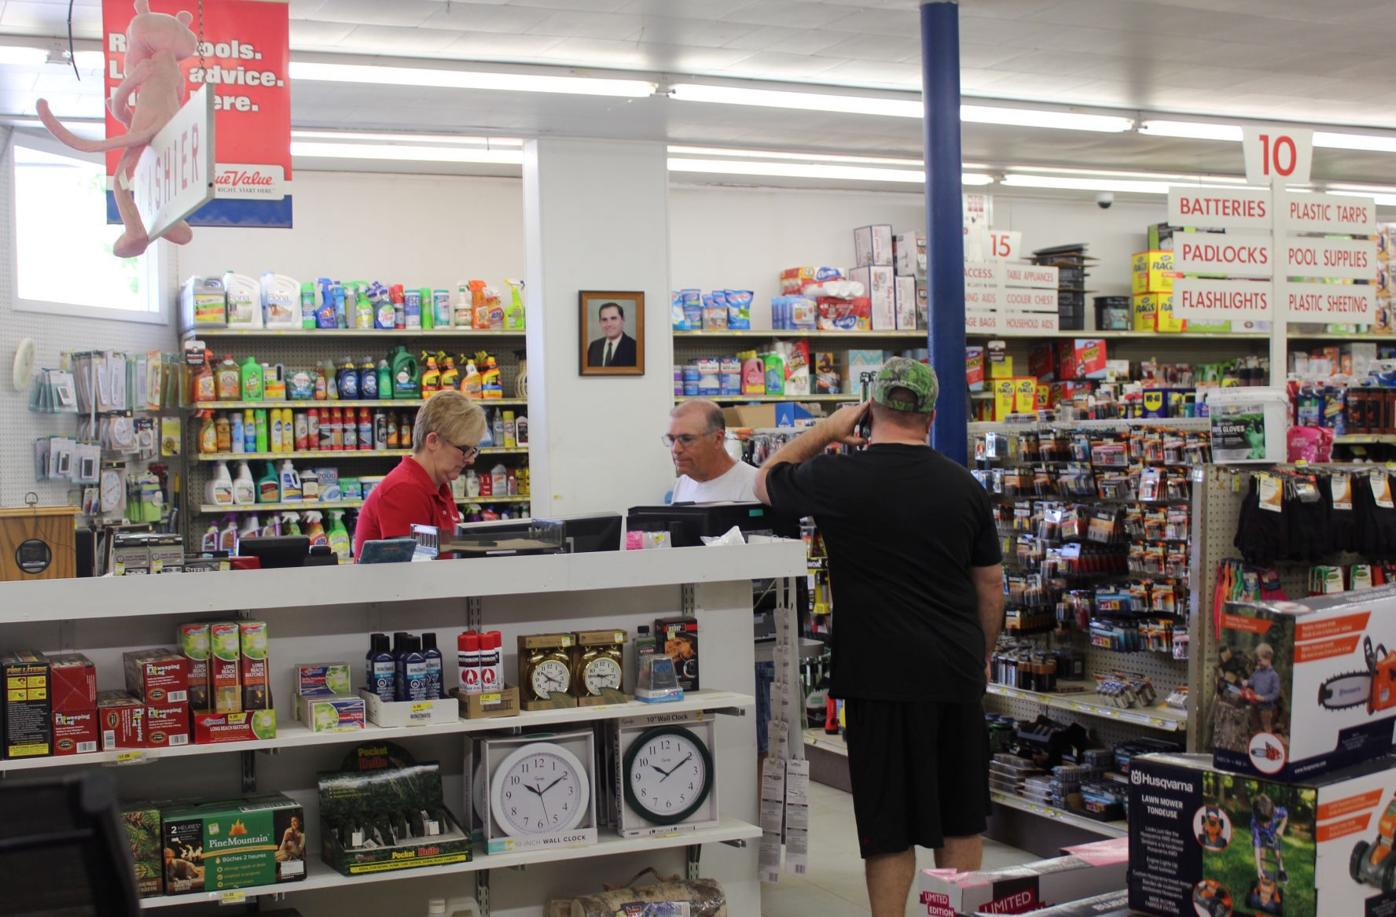 Customers checking out Sandy's